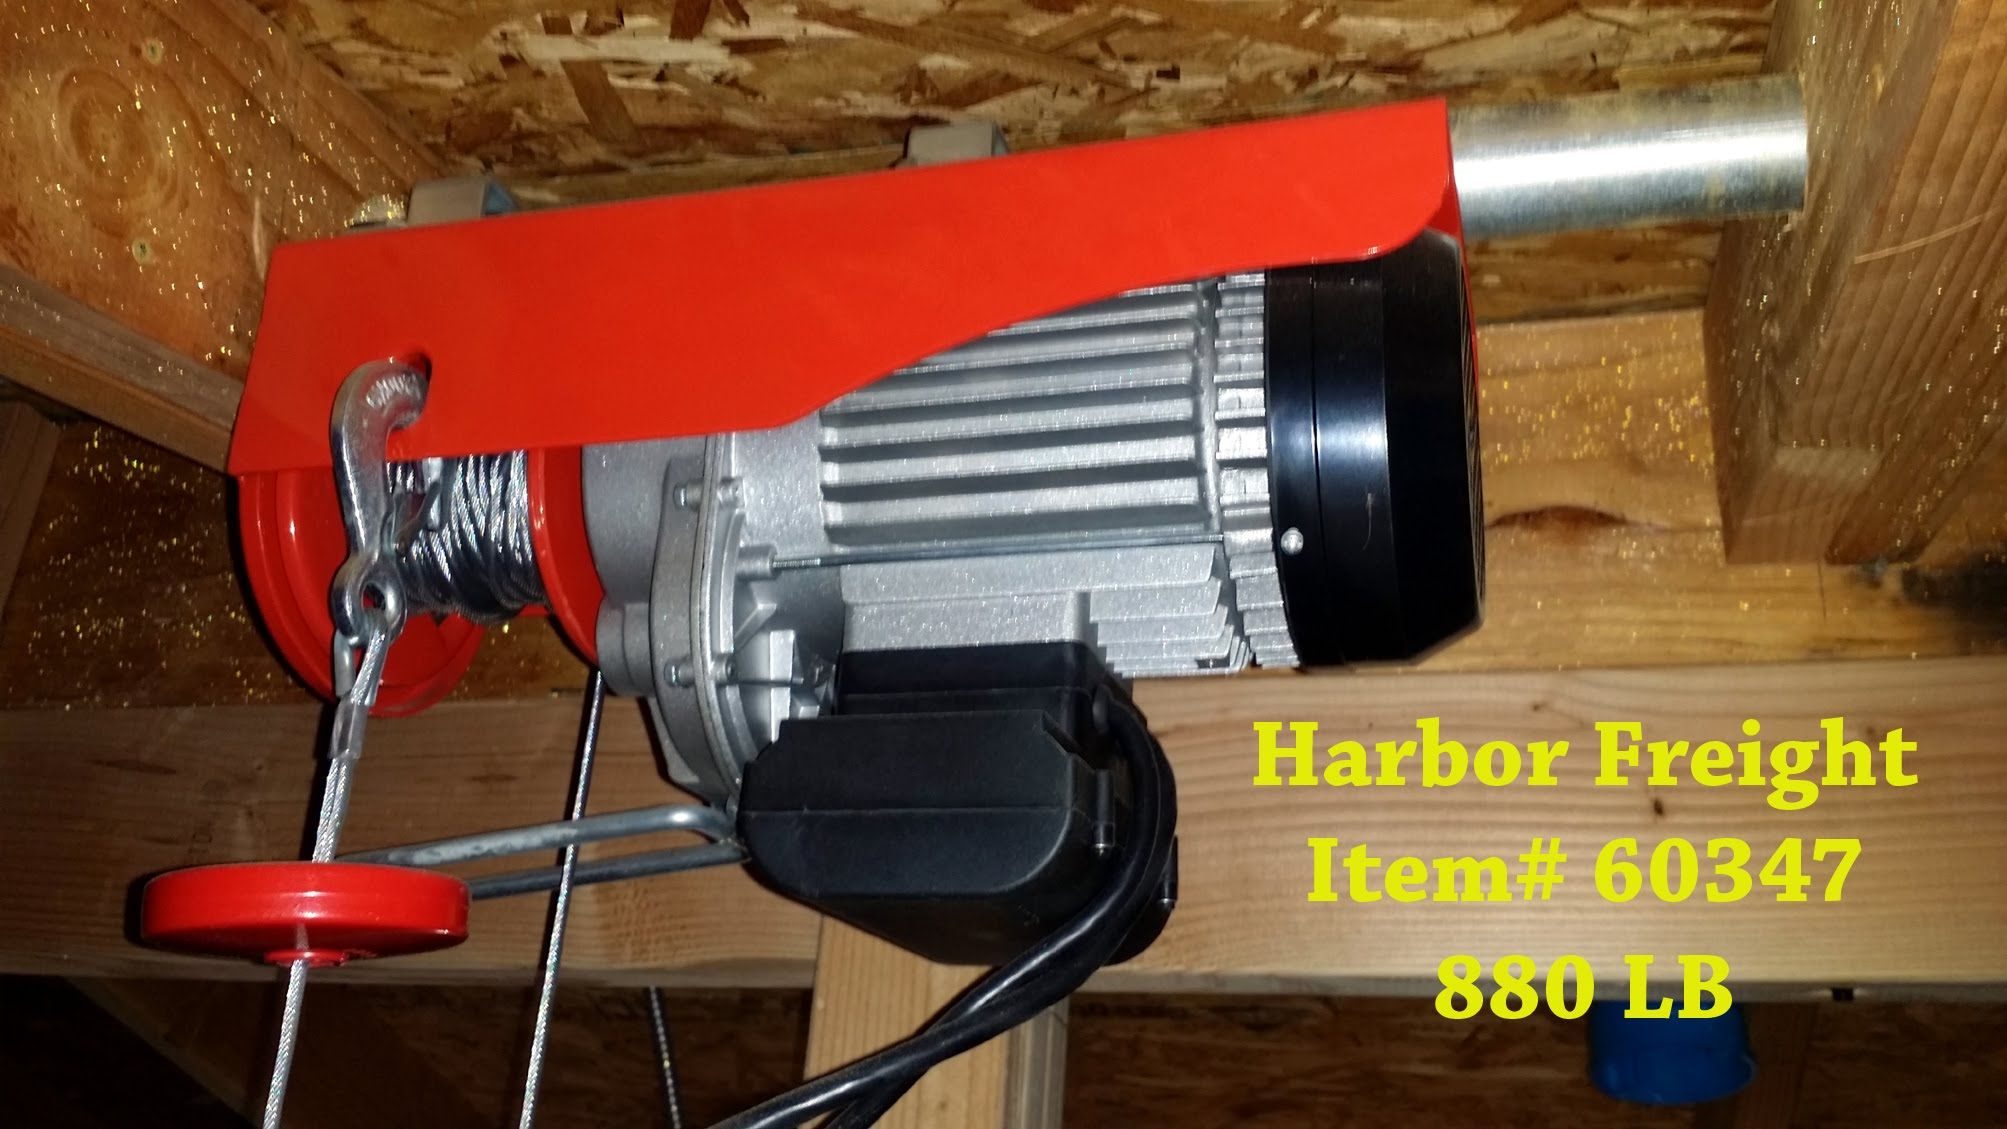 hight resolution of harbor freight 60347 880 lb winch